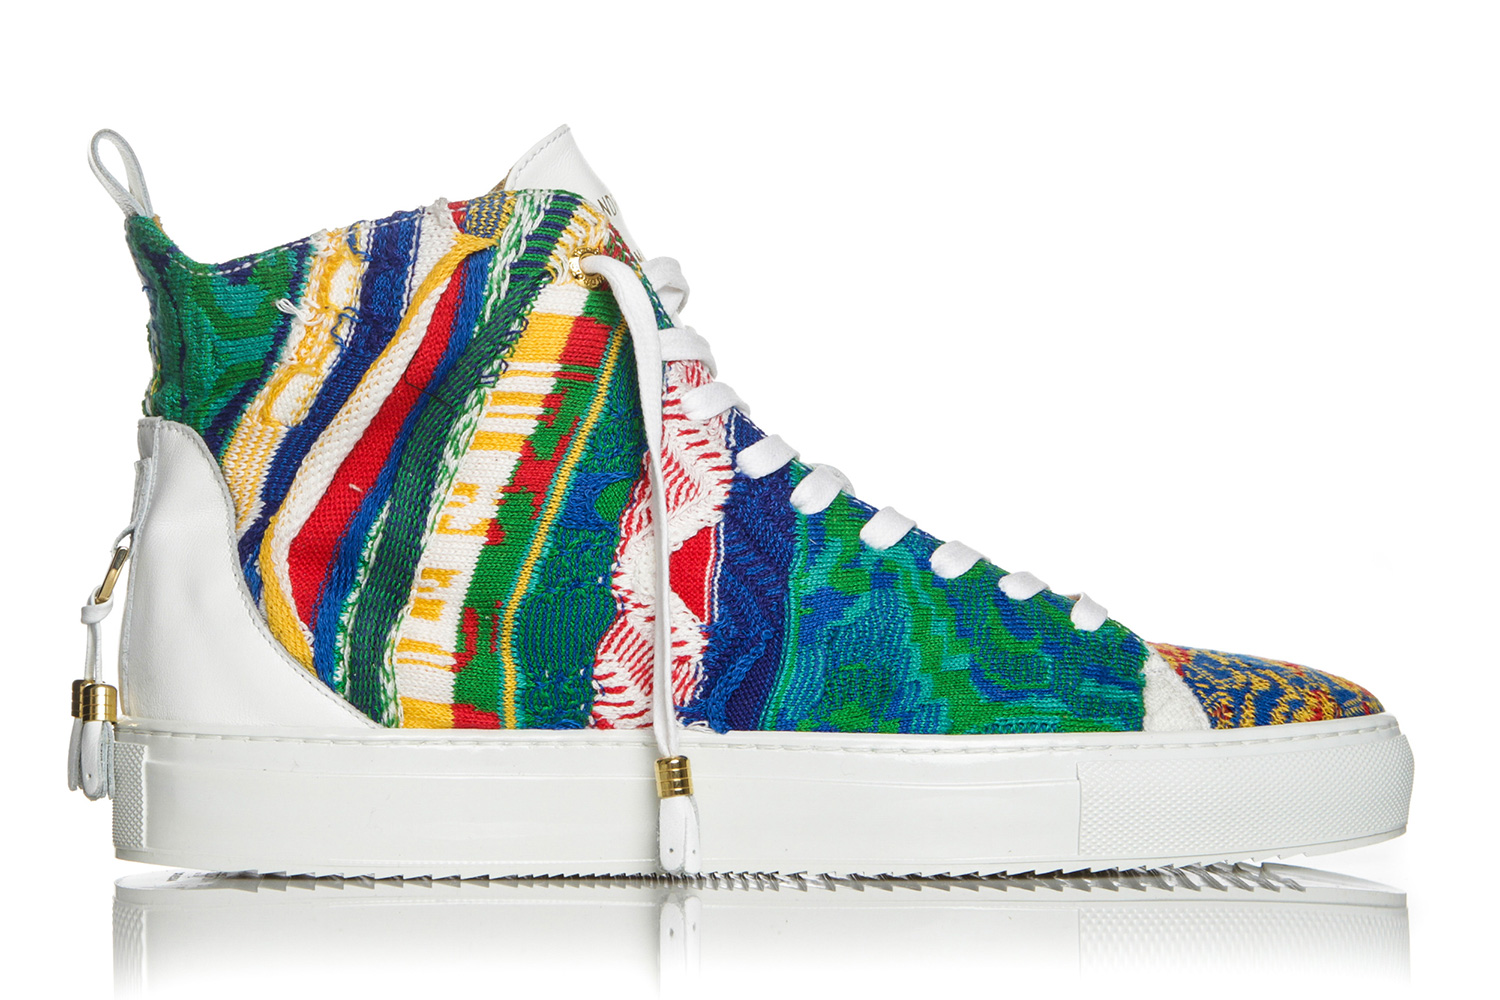 coogi-android-homme-sneaker-collaboration-04[1][1].jpg